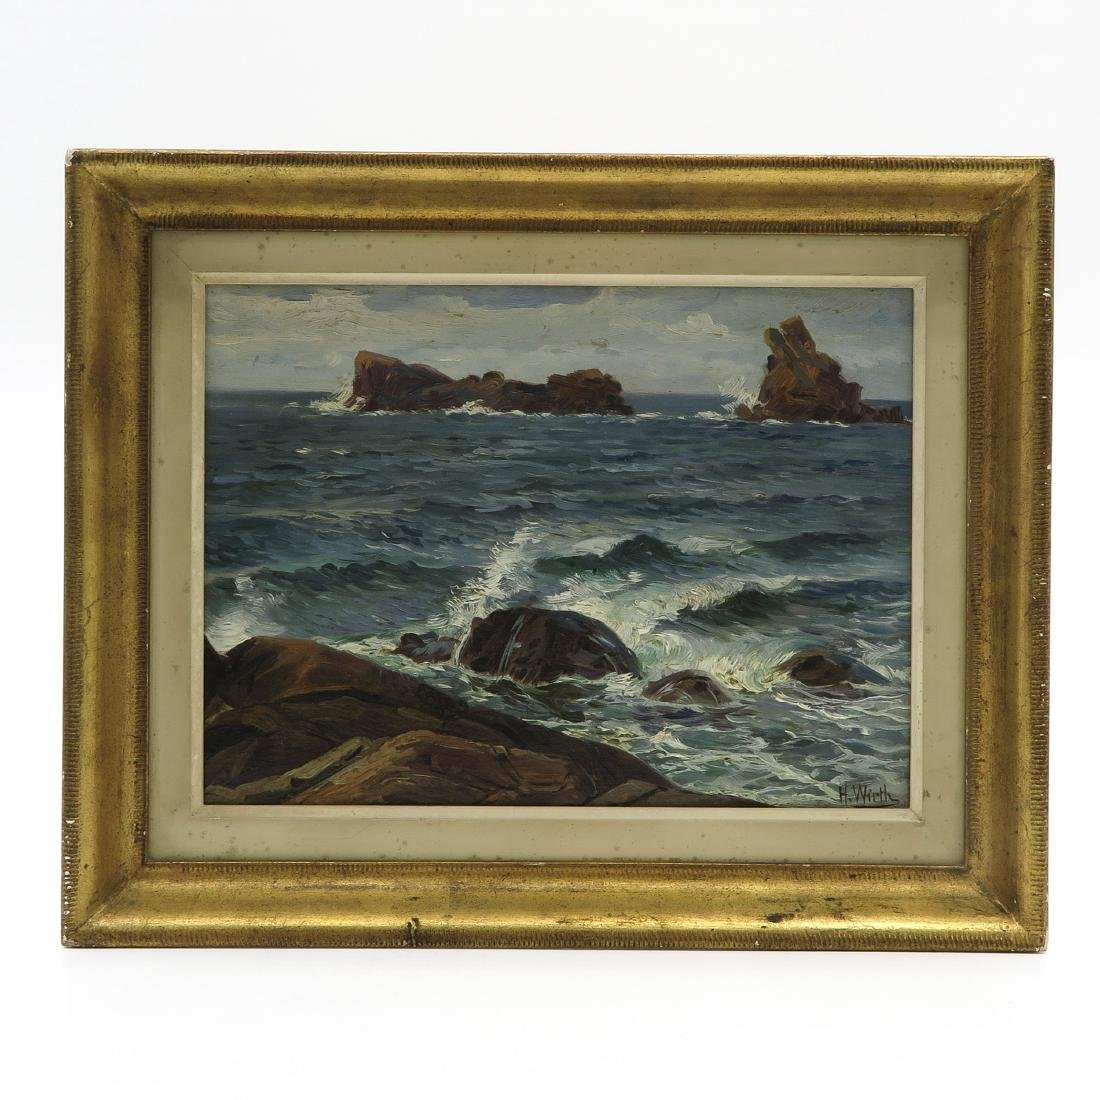 Oil on Panel Signed H. Wirth